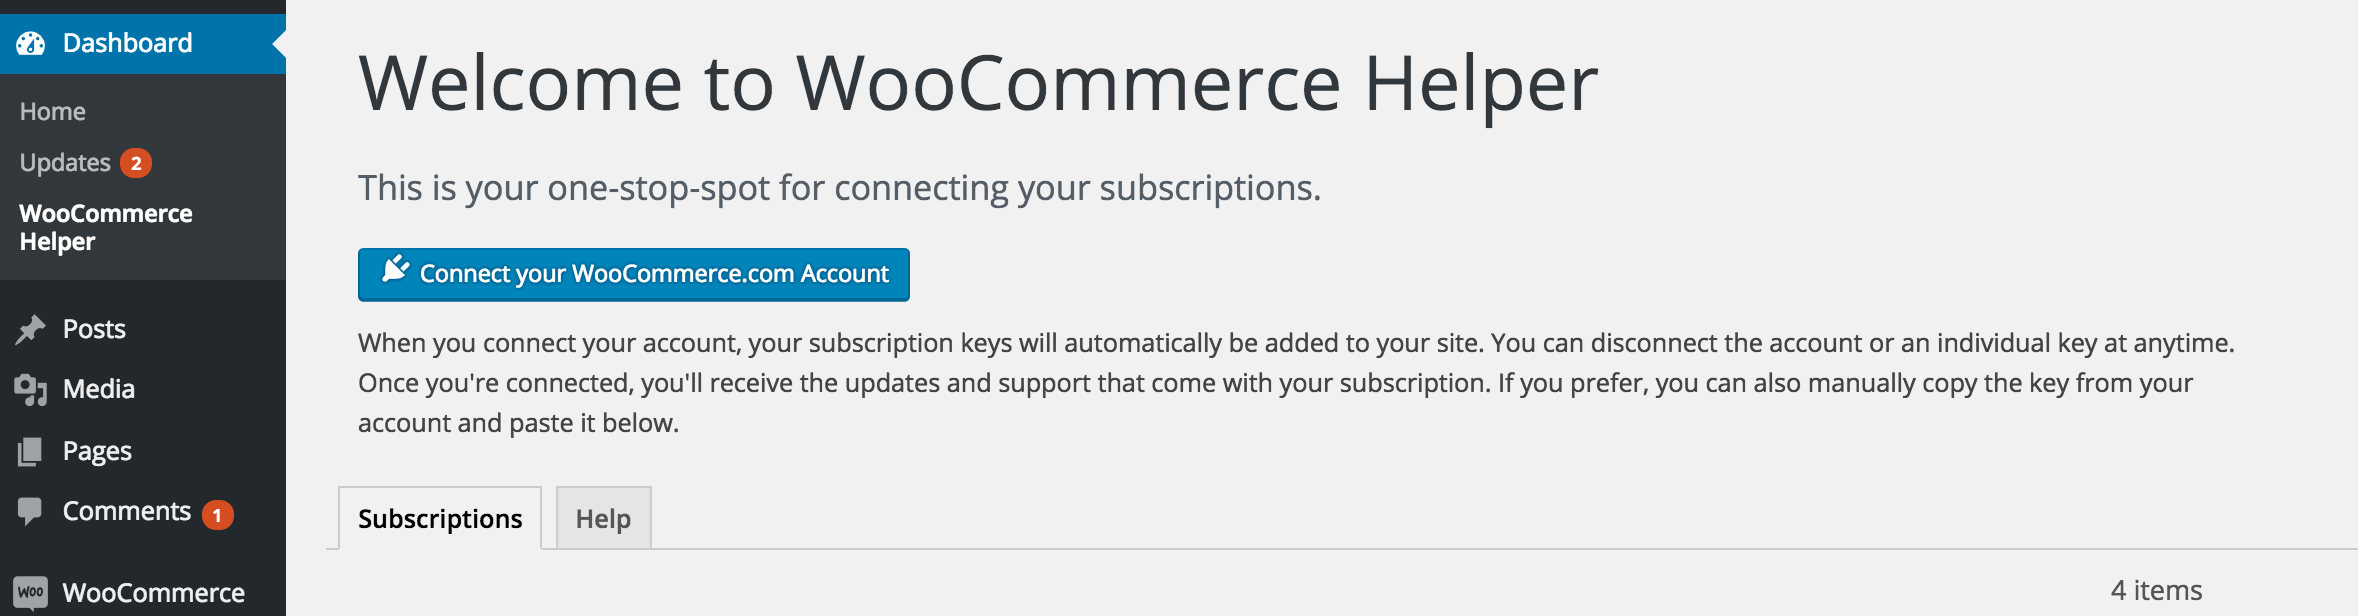 woocommerce-helper-display